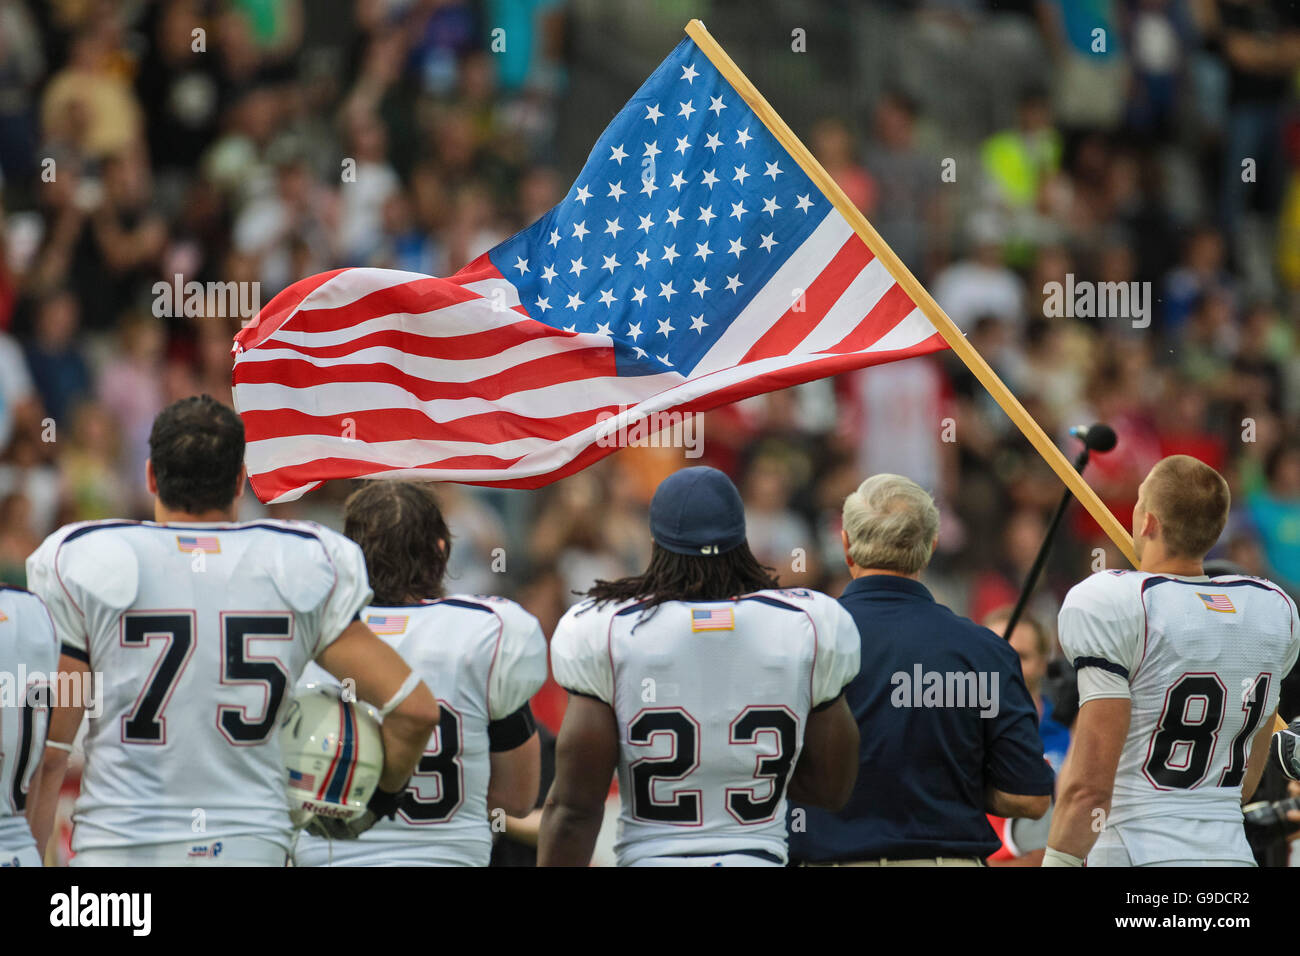 Team USA during the national anthem at the Football World Championship on July 10, 2011, USA wins 48:7 against Germany - Stock Image